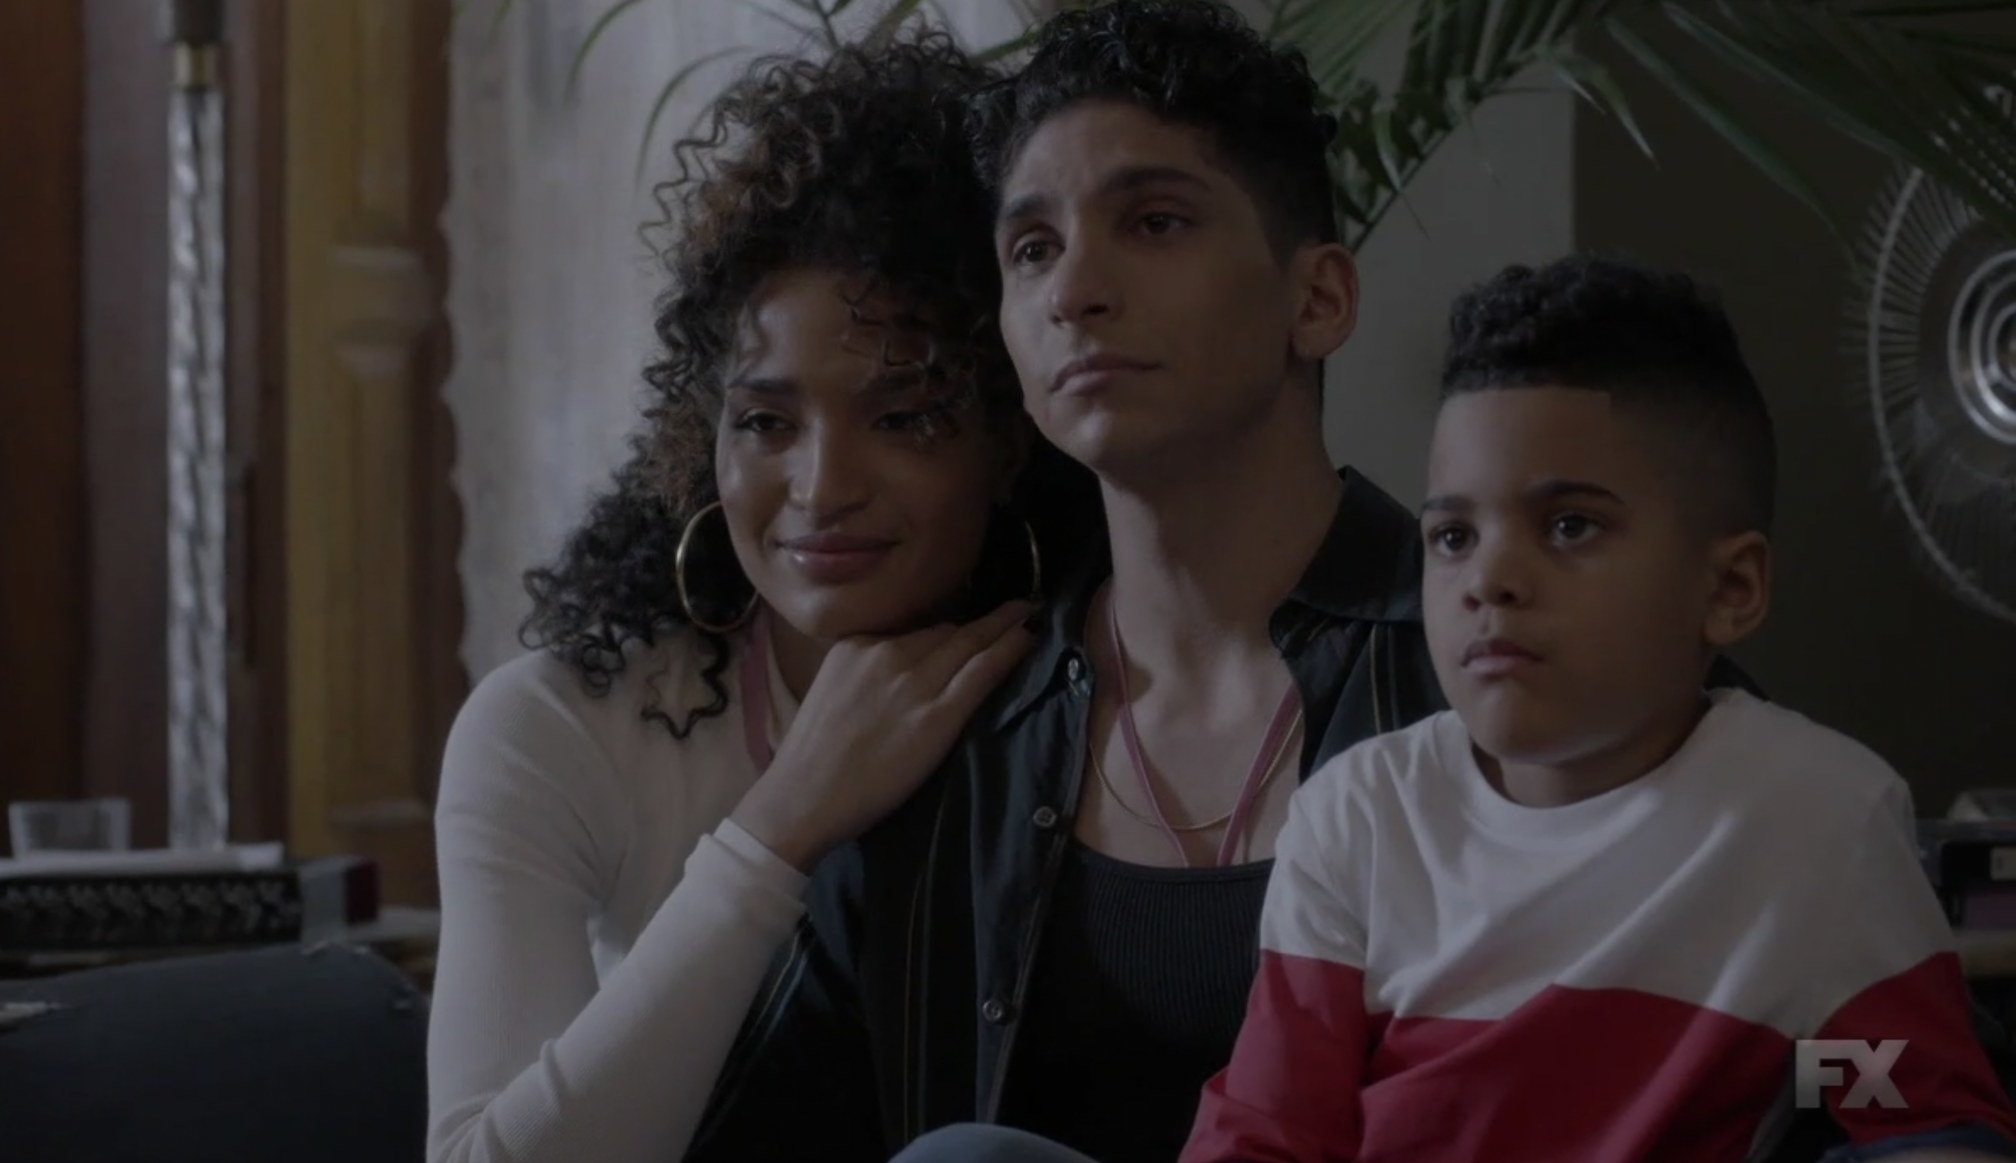 Angel, Papi, and son sitting very close and holding each other